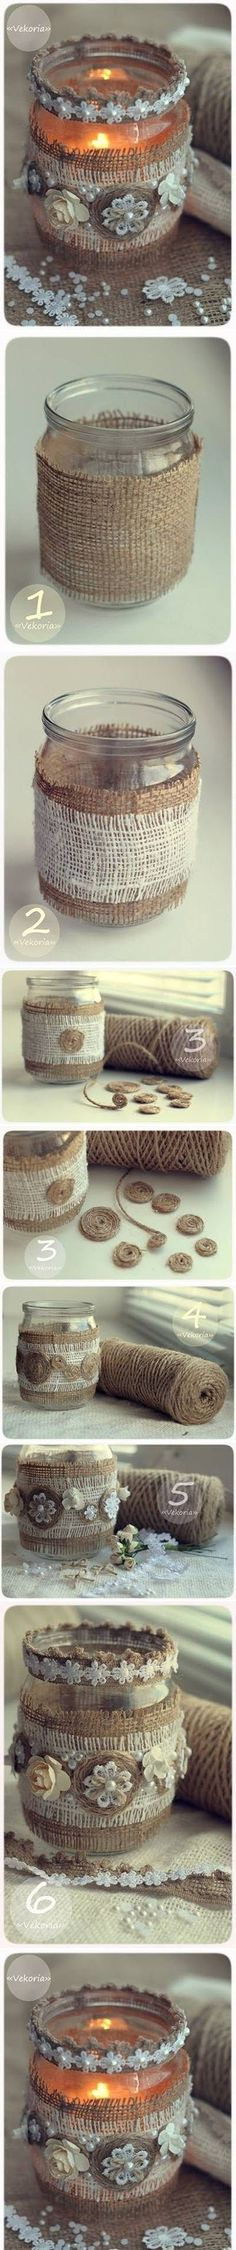 Beautiful Jar Craft | DIY & Crafts